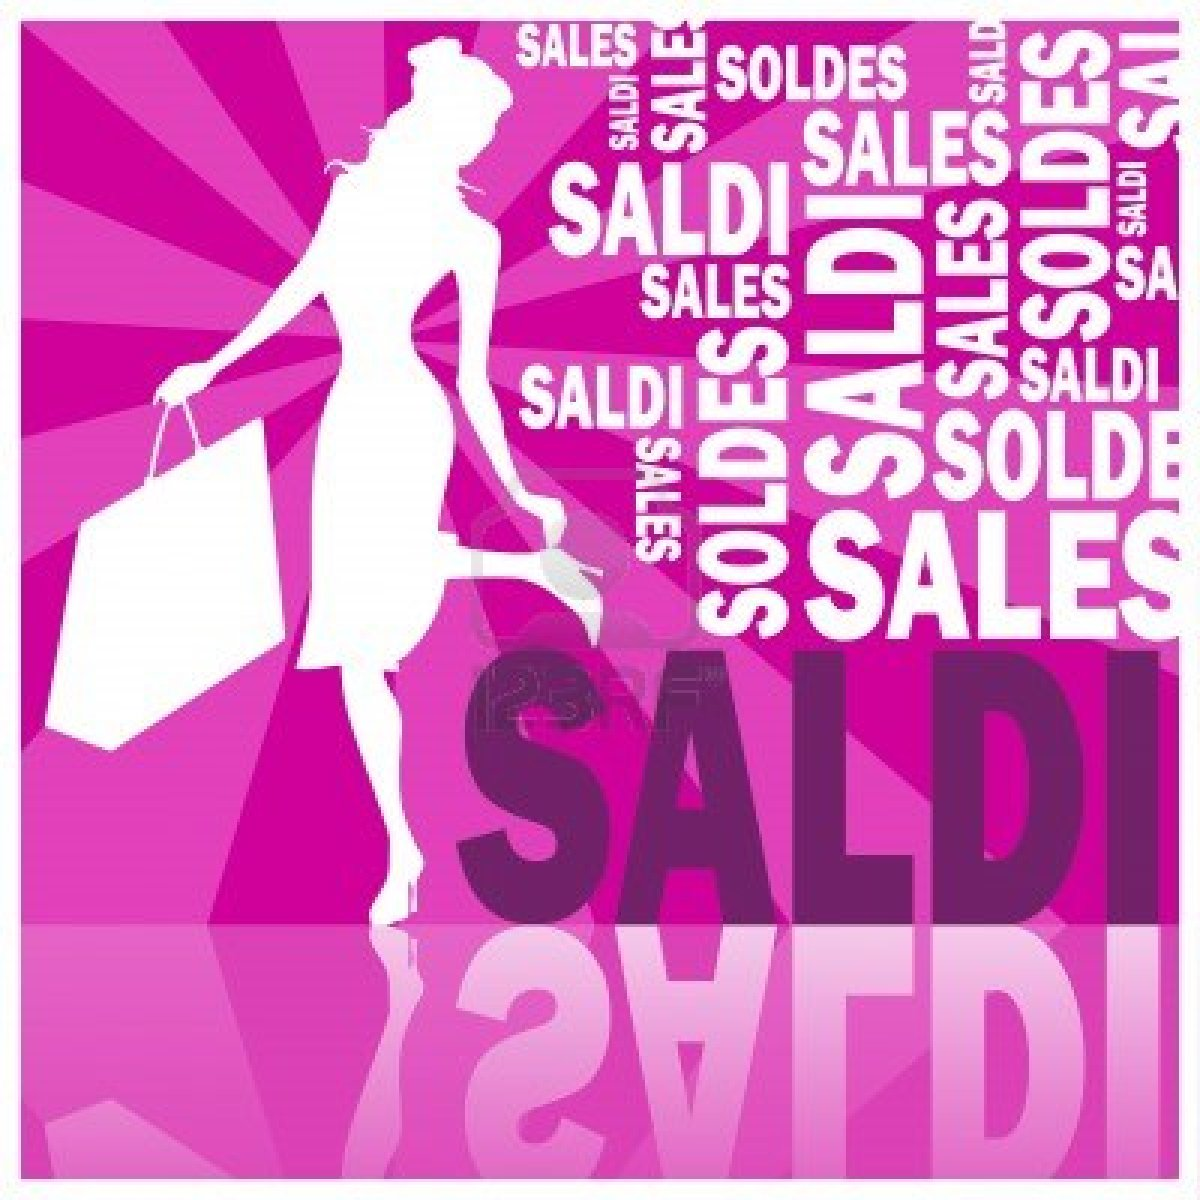 10416302-saldi-words-and-woman-violet